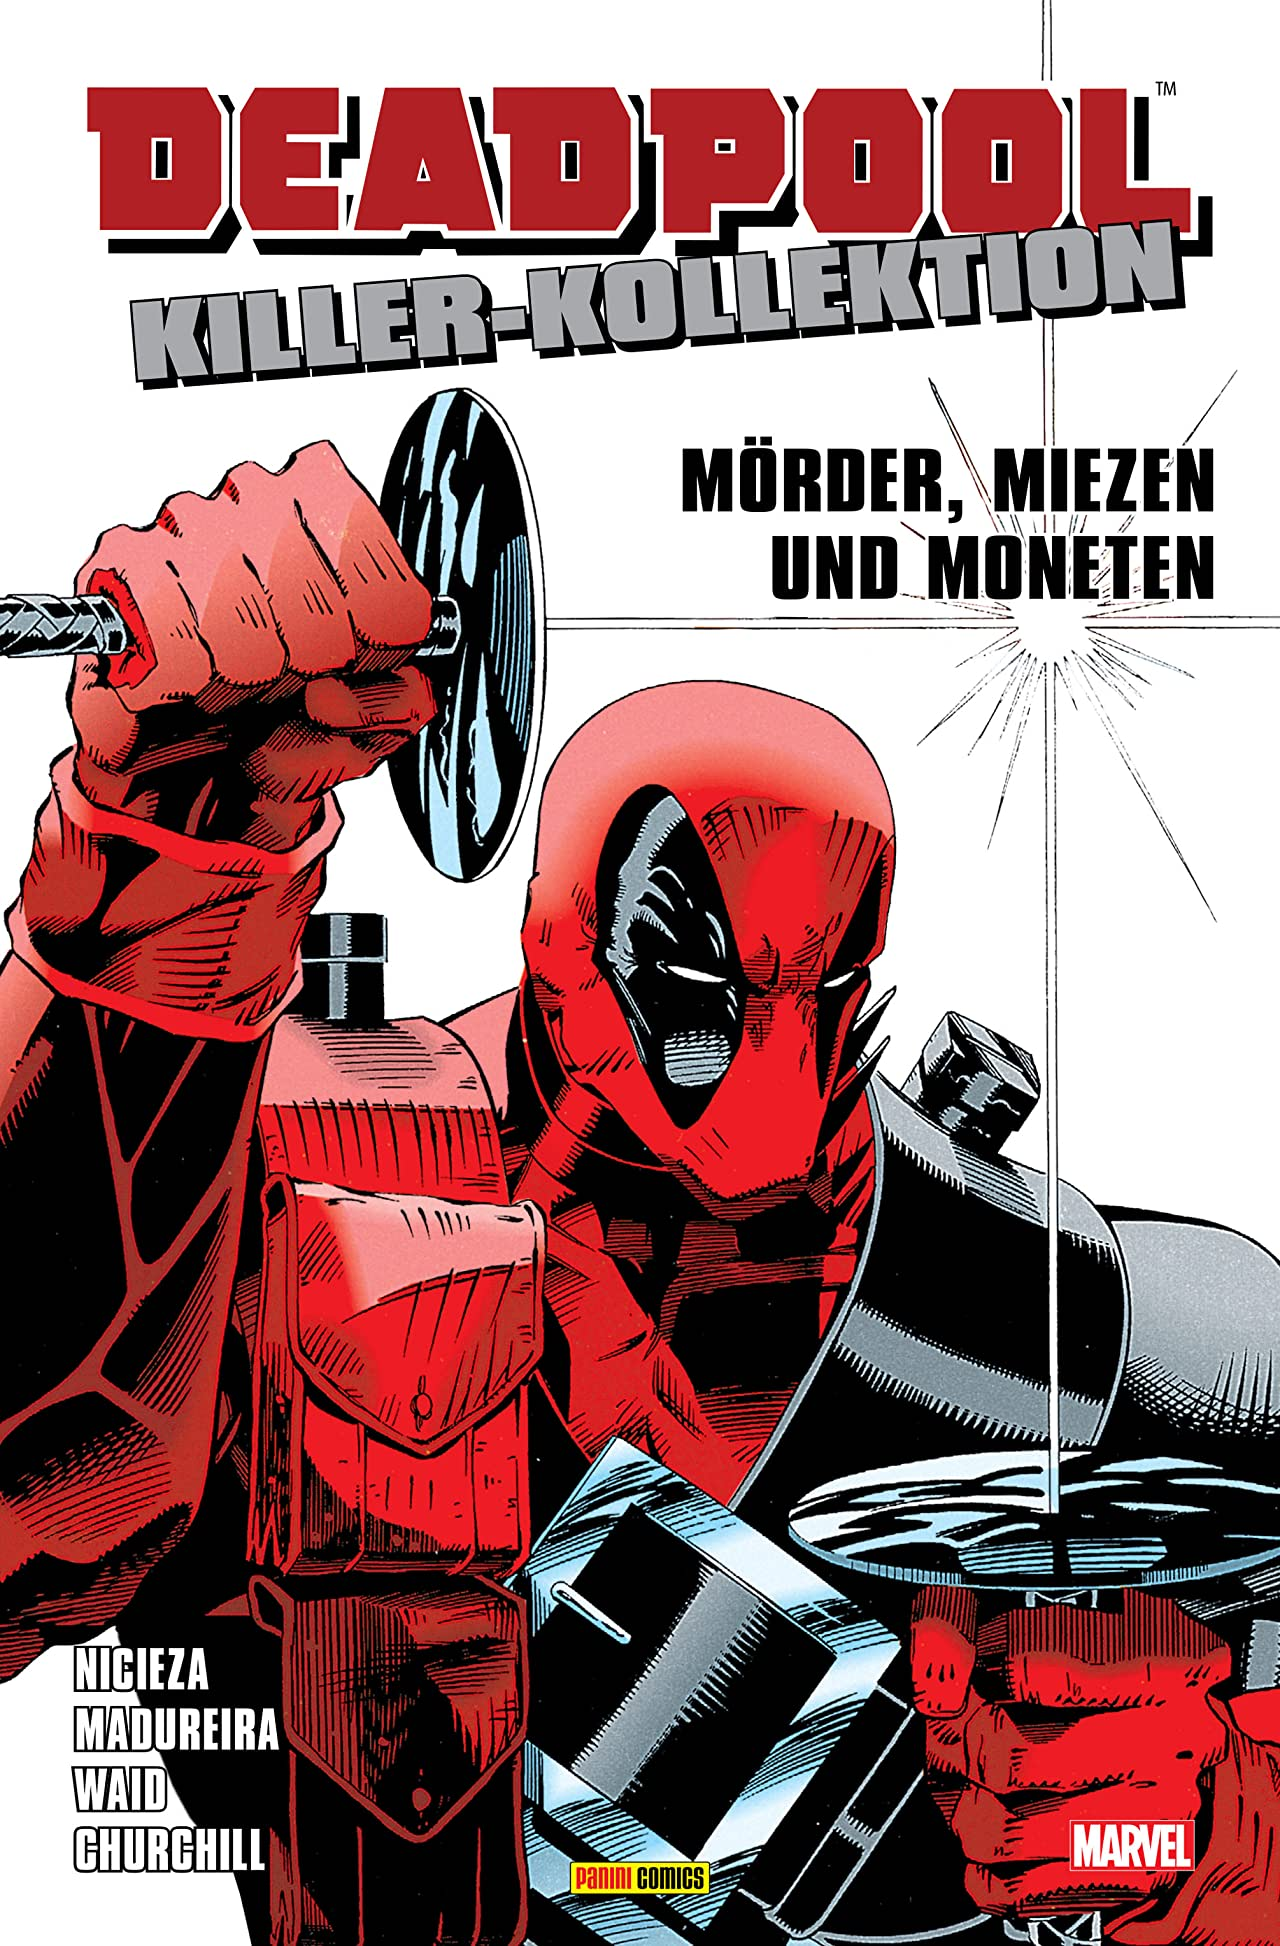 Deadpool Killer-Kollektion Vol. 1: Mörder, Miezen und Moneten